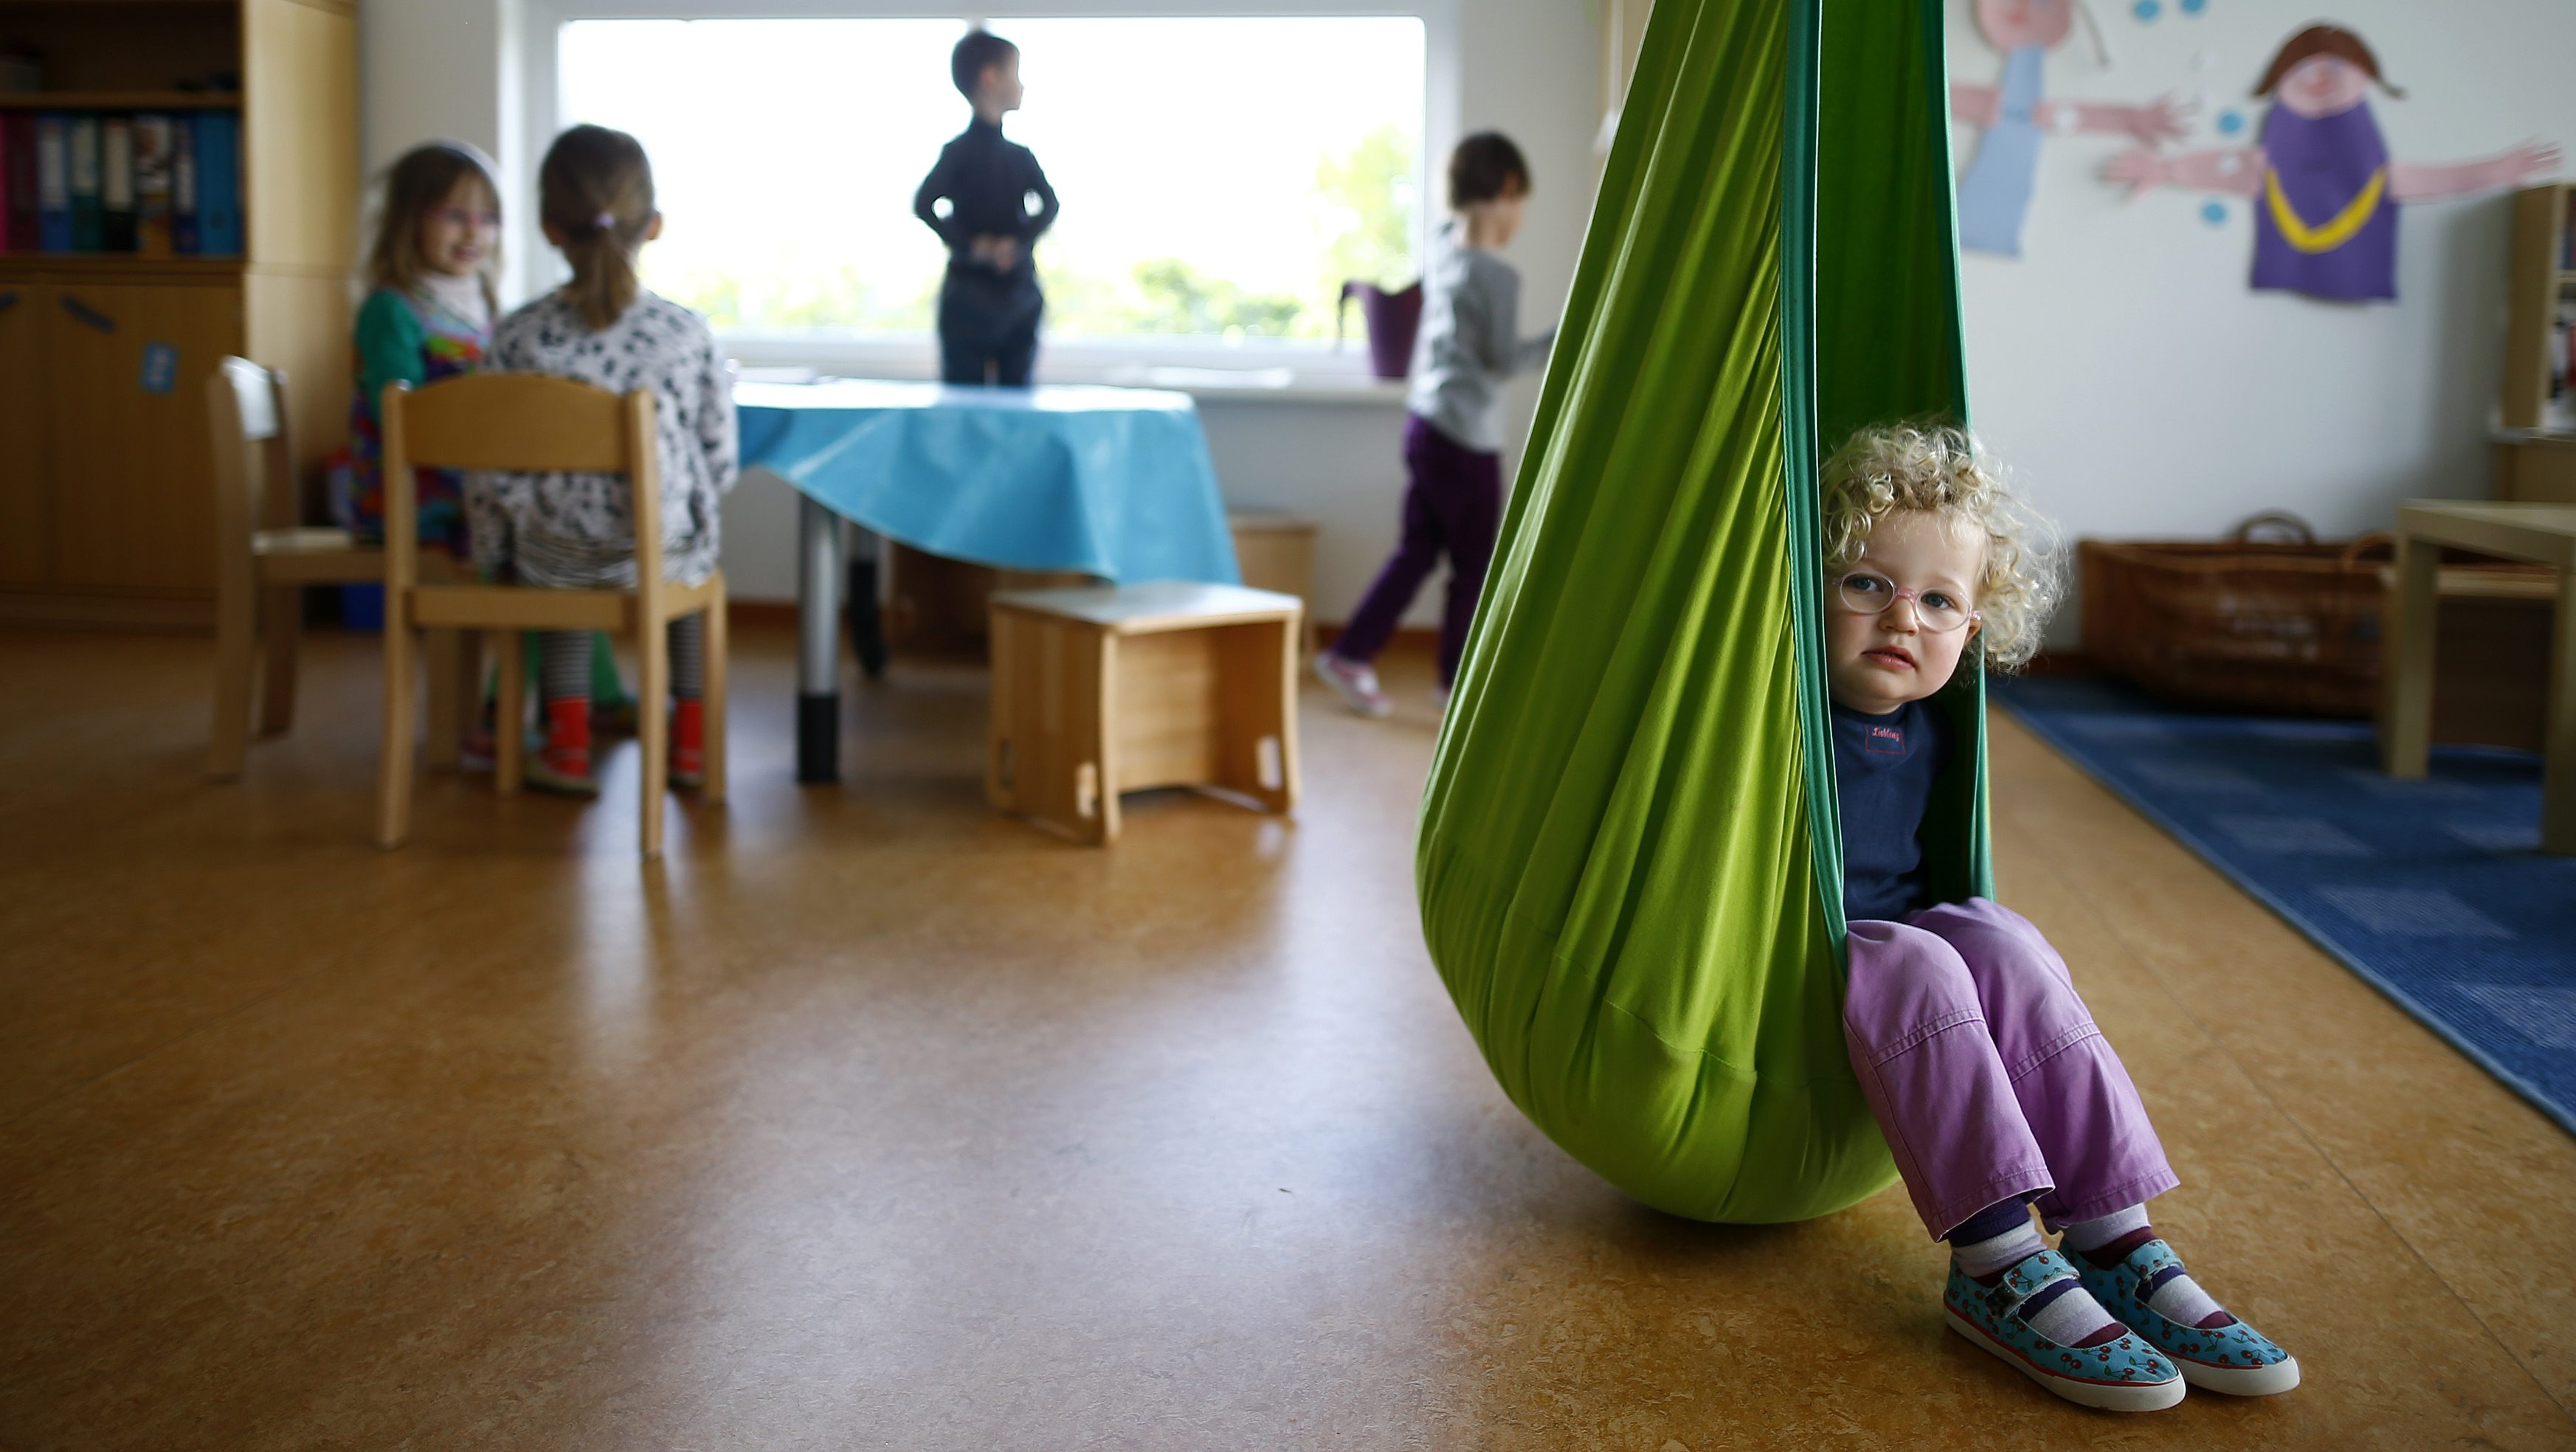 Sweden's gender-neutral preschools produce kids who are more